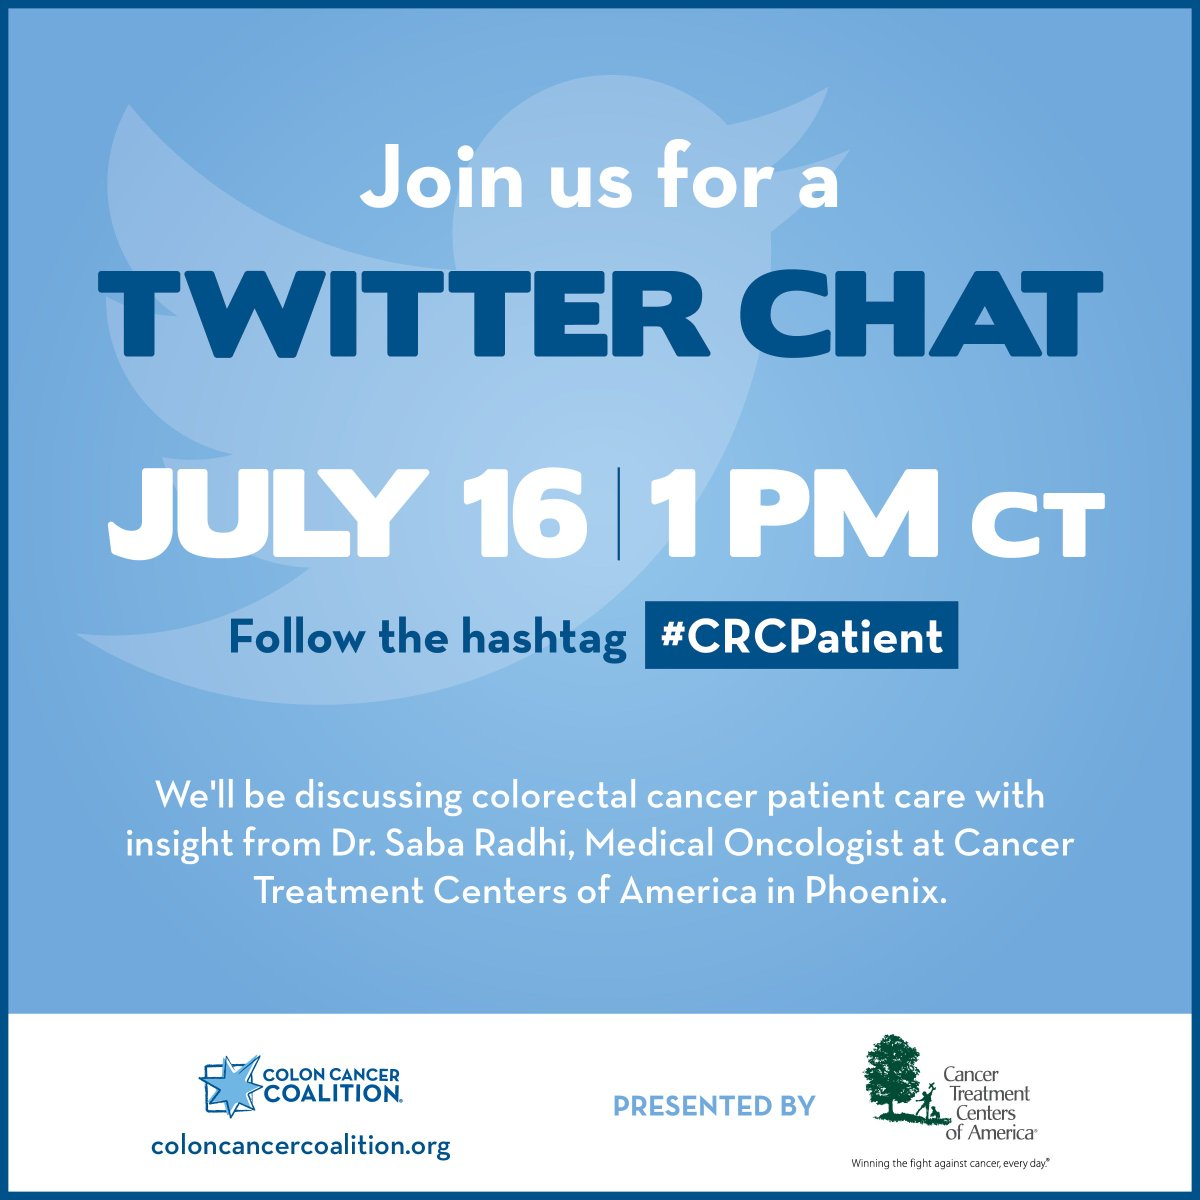 Colon Cancer Coalition On Twitter Join Us Crcpatient Twitter Chat On July 16 At 1 P M Ct We Re Discussing Fertility Preservation Tumor Markers Genetic Testing Clinical Trials And Recurrence With Dr Saba